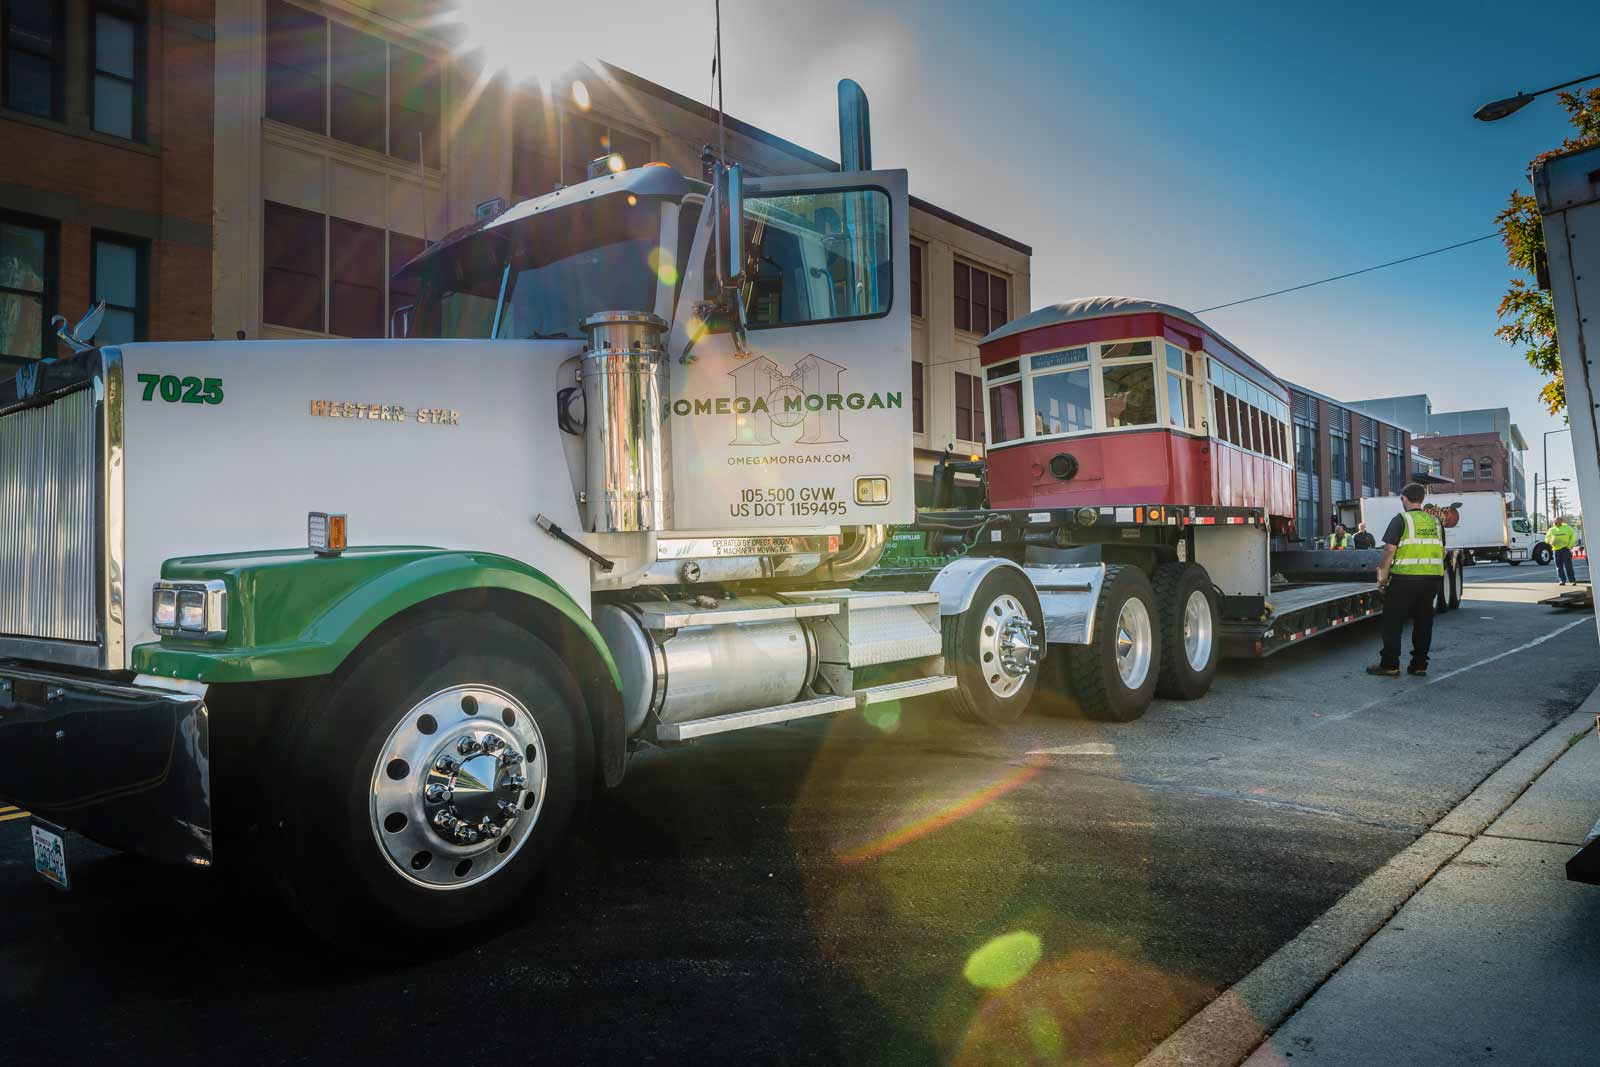 Omega morgan truck parked with antique trolley on truck bed